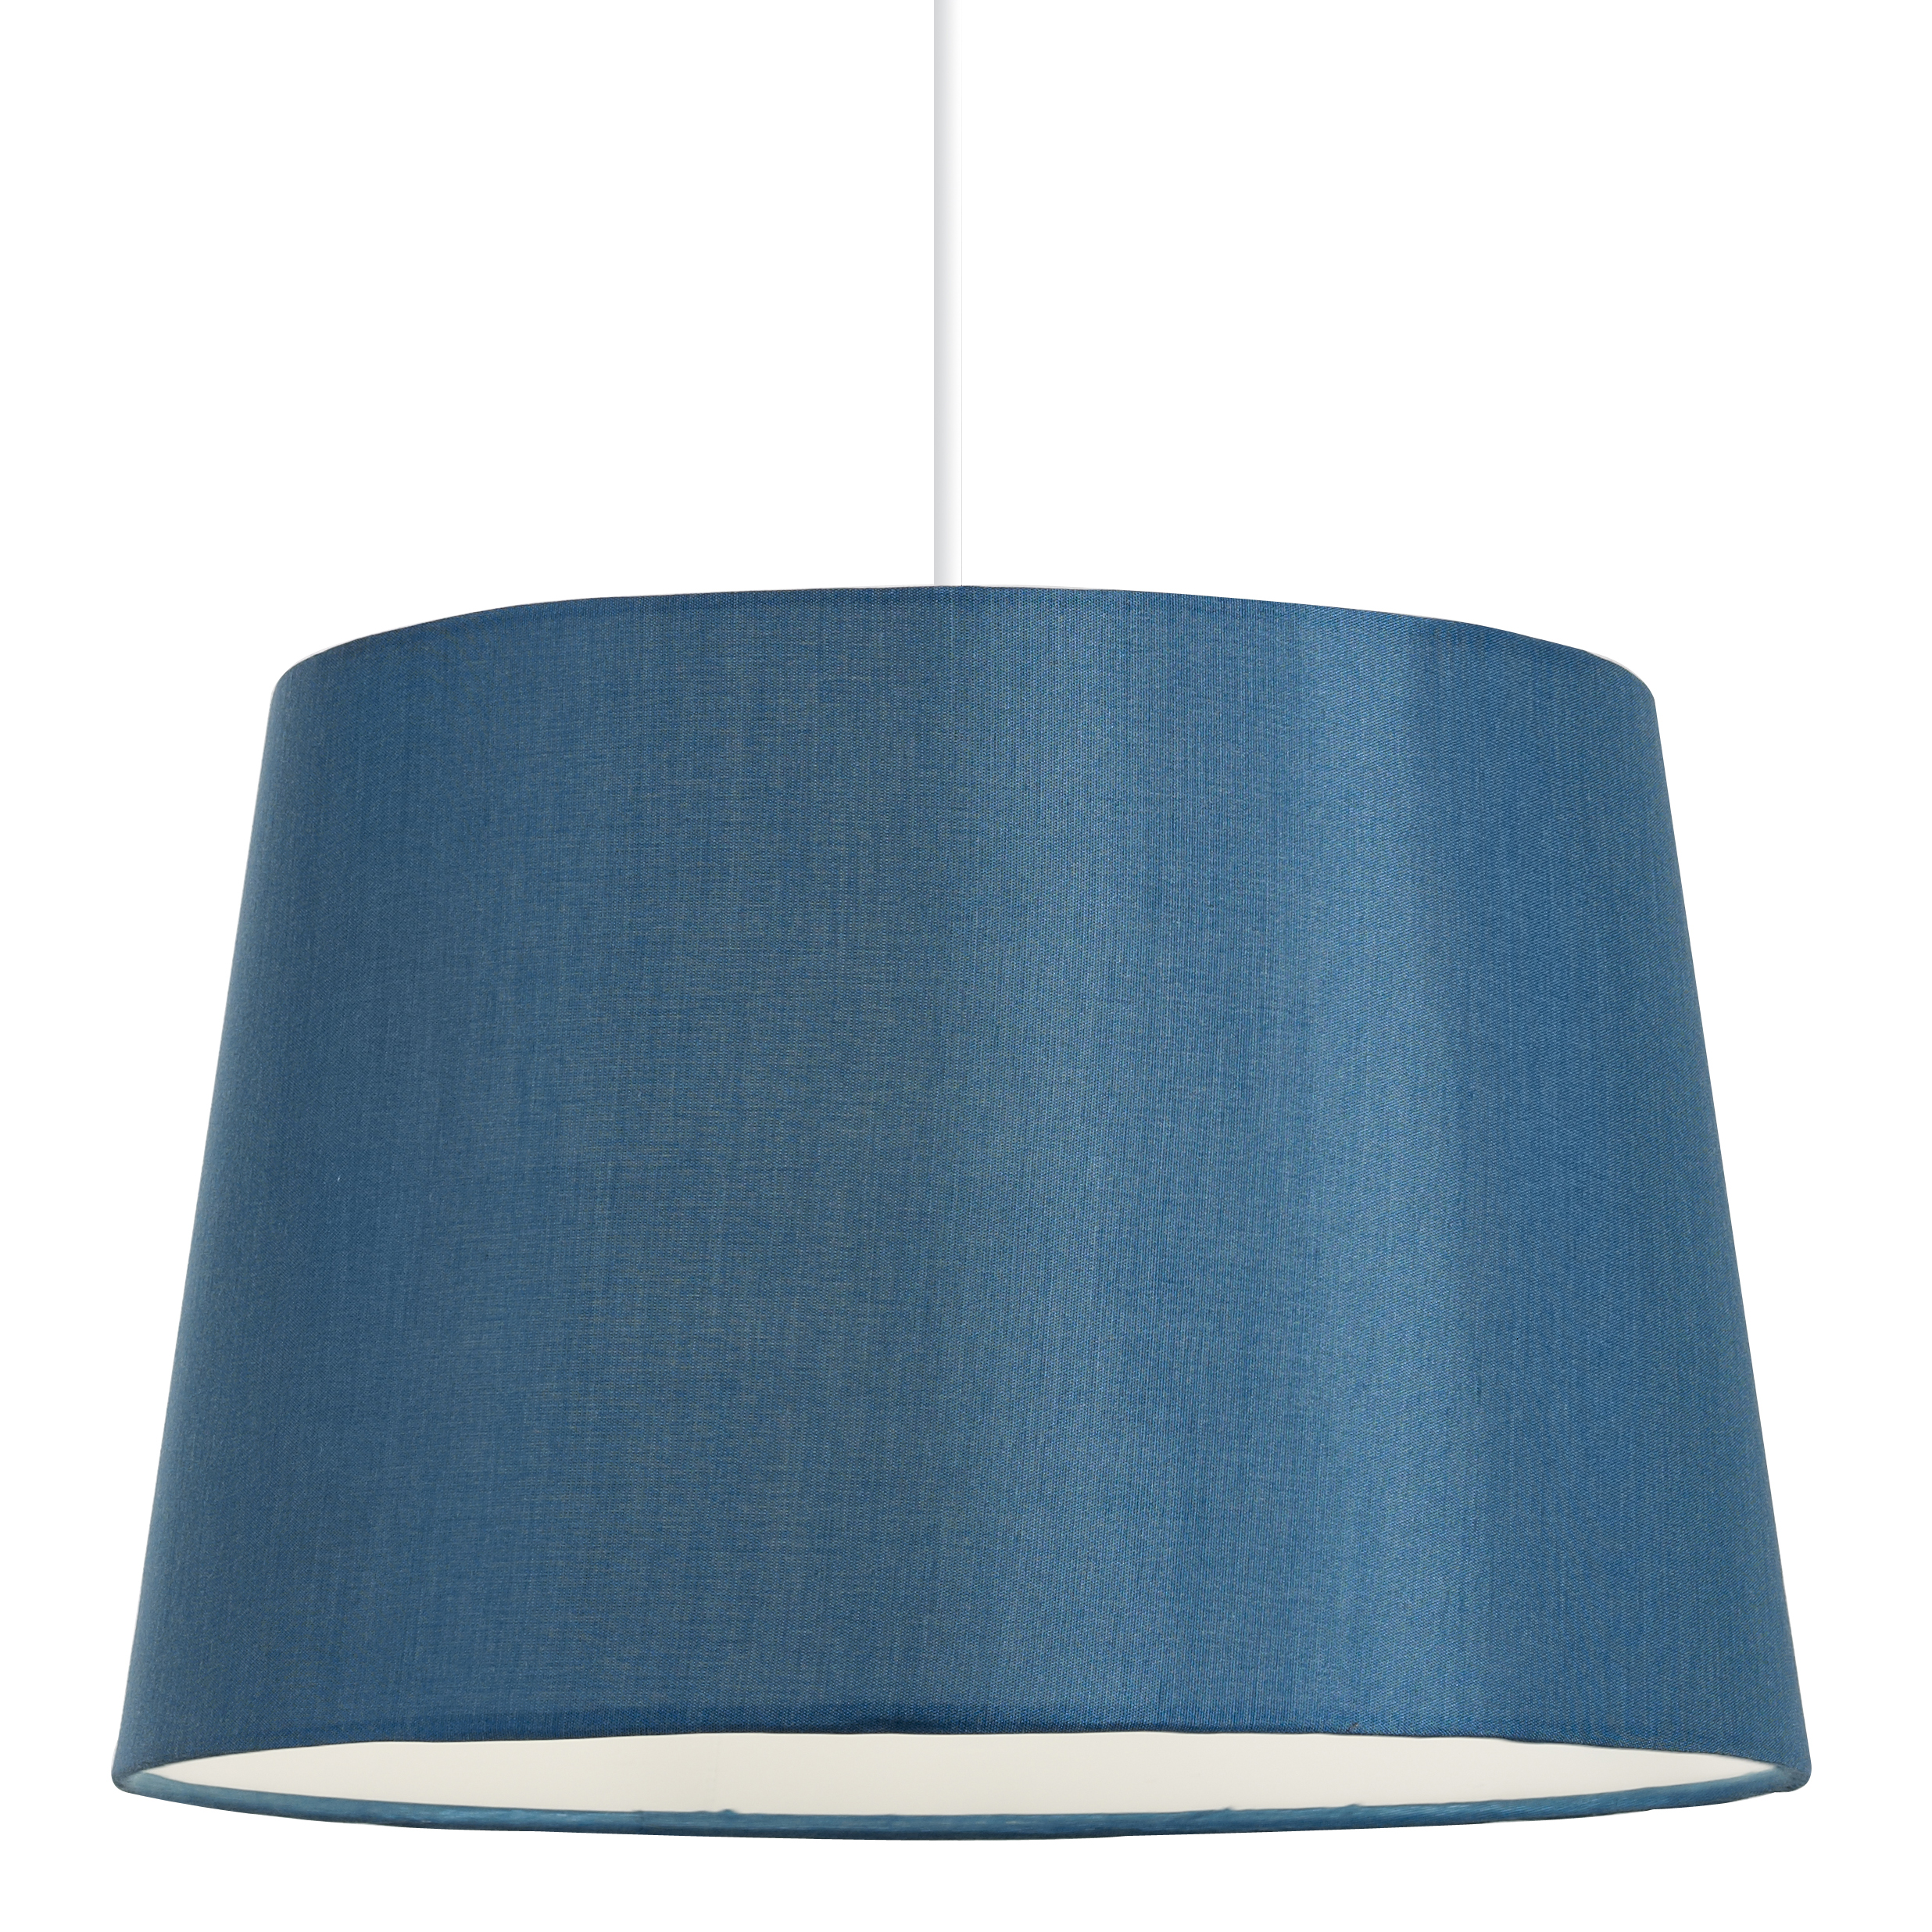 teal ceiling light shades photo - 7